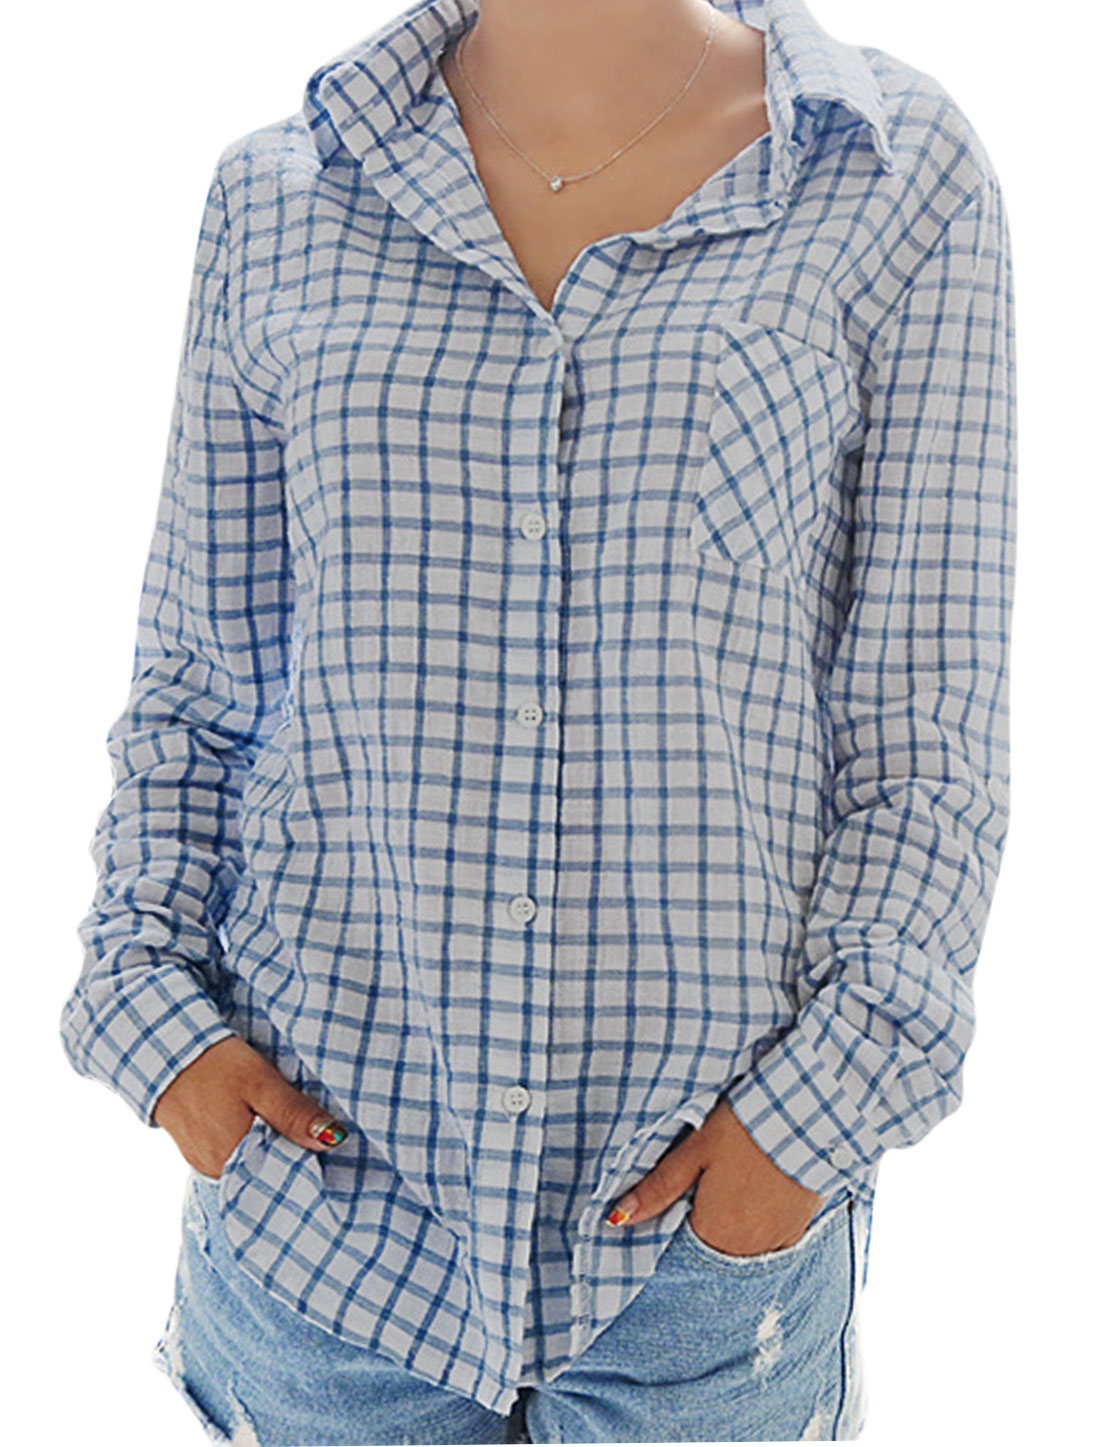 Lady Plaids Pattern Single Breasted Bust Pocket Casual Shirt Blue White XS